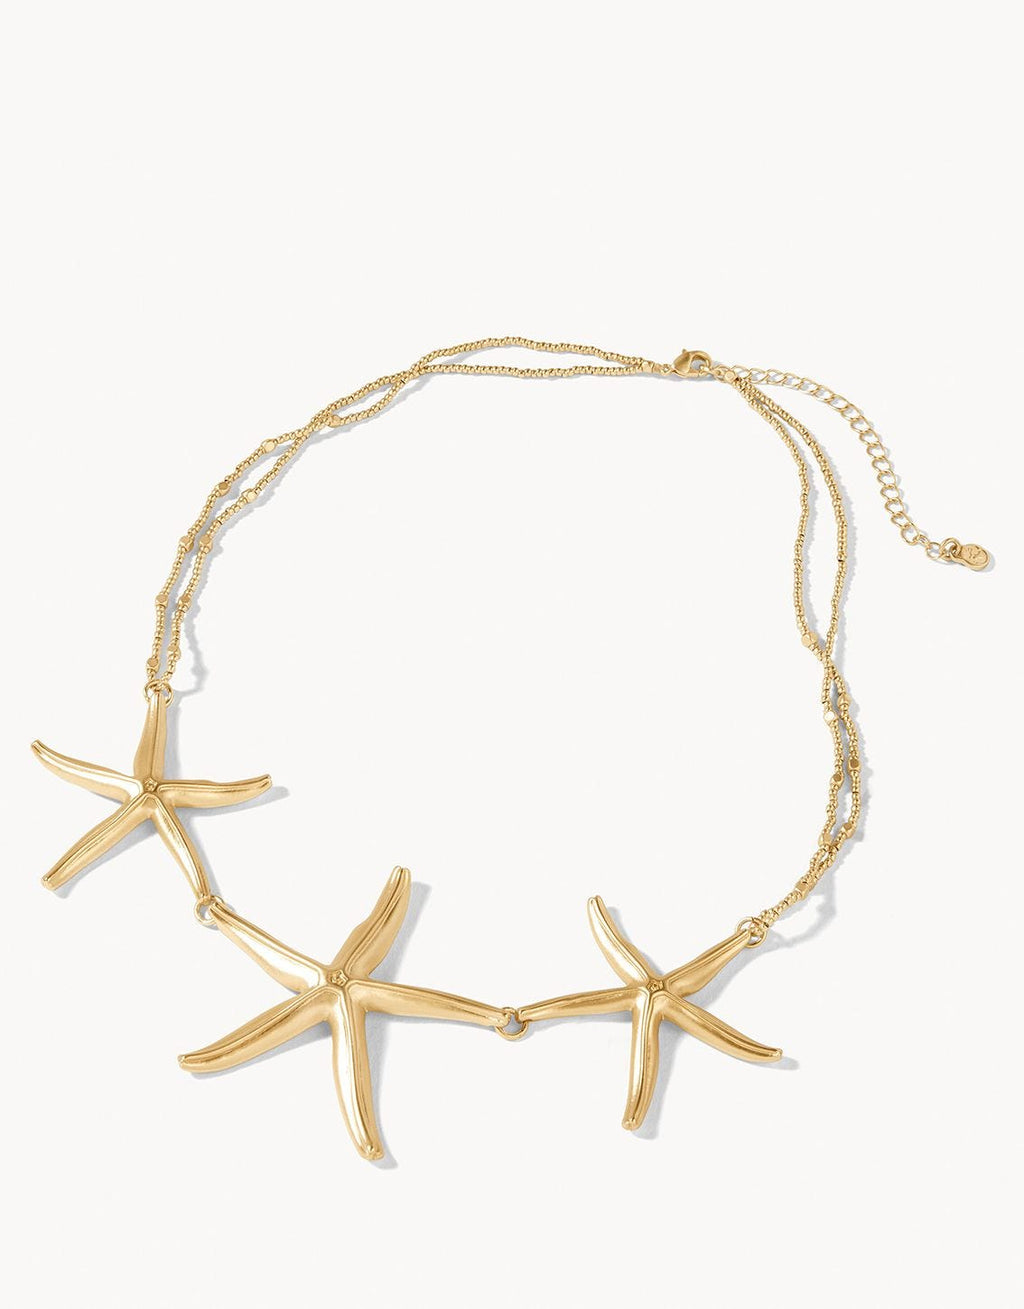 Sea Star Statement Necklace